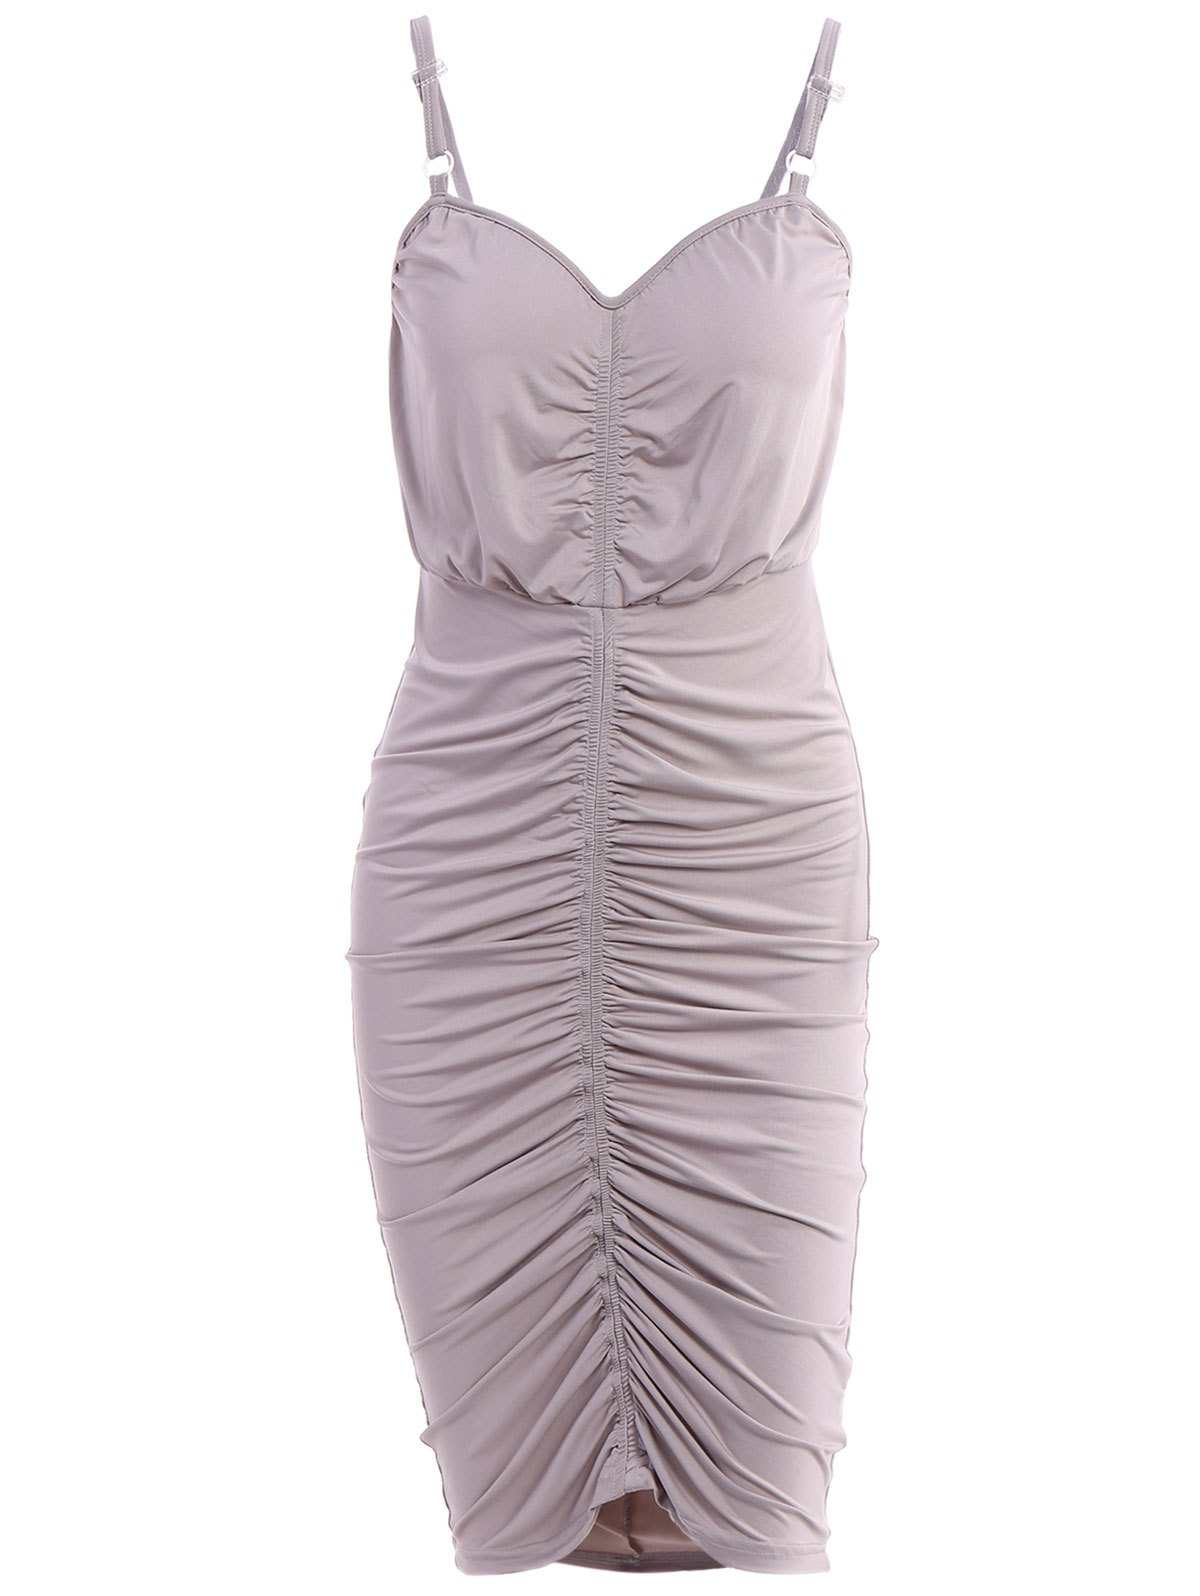 Casual Spaghetti Strap Ruched Bodycon Women's Dress - GRAY S